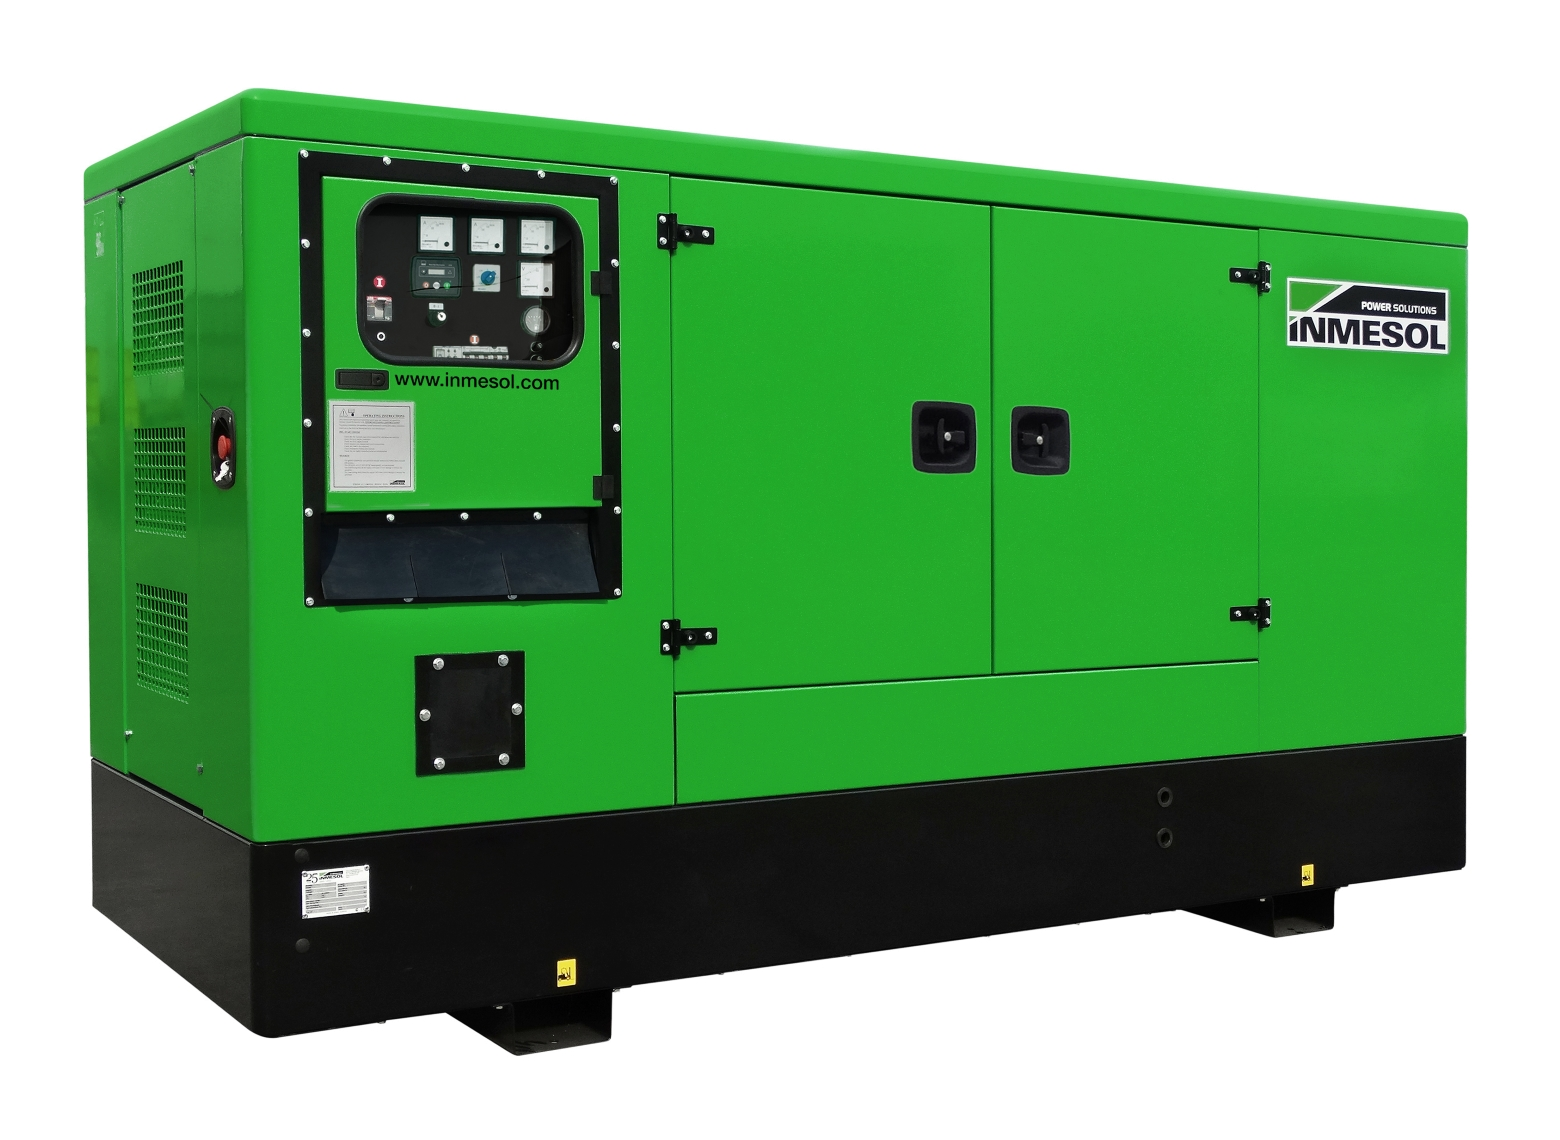 Generator with manual control panel.II-090 - FPT - N45SM3 - 1.500 R.P.M. | 50 Hz